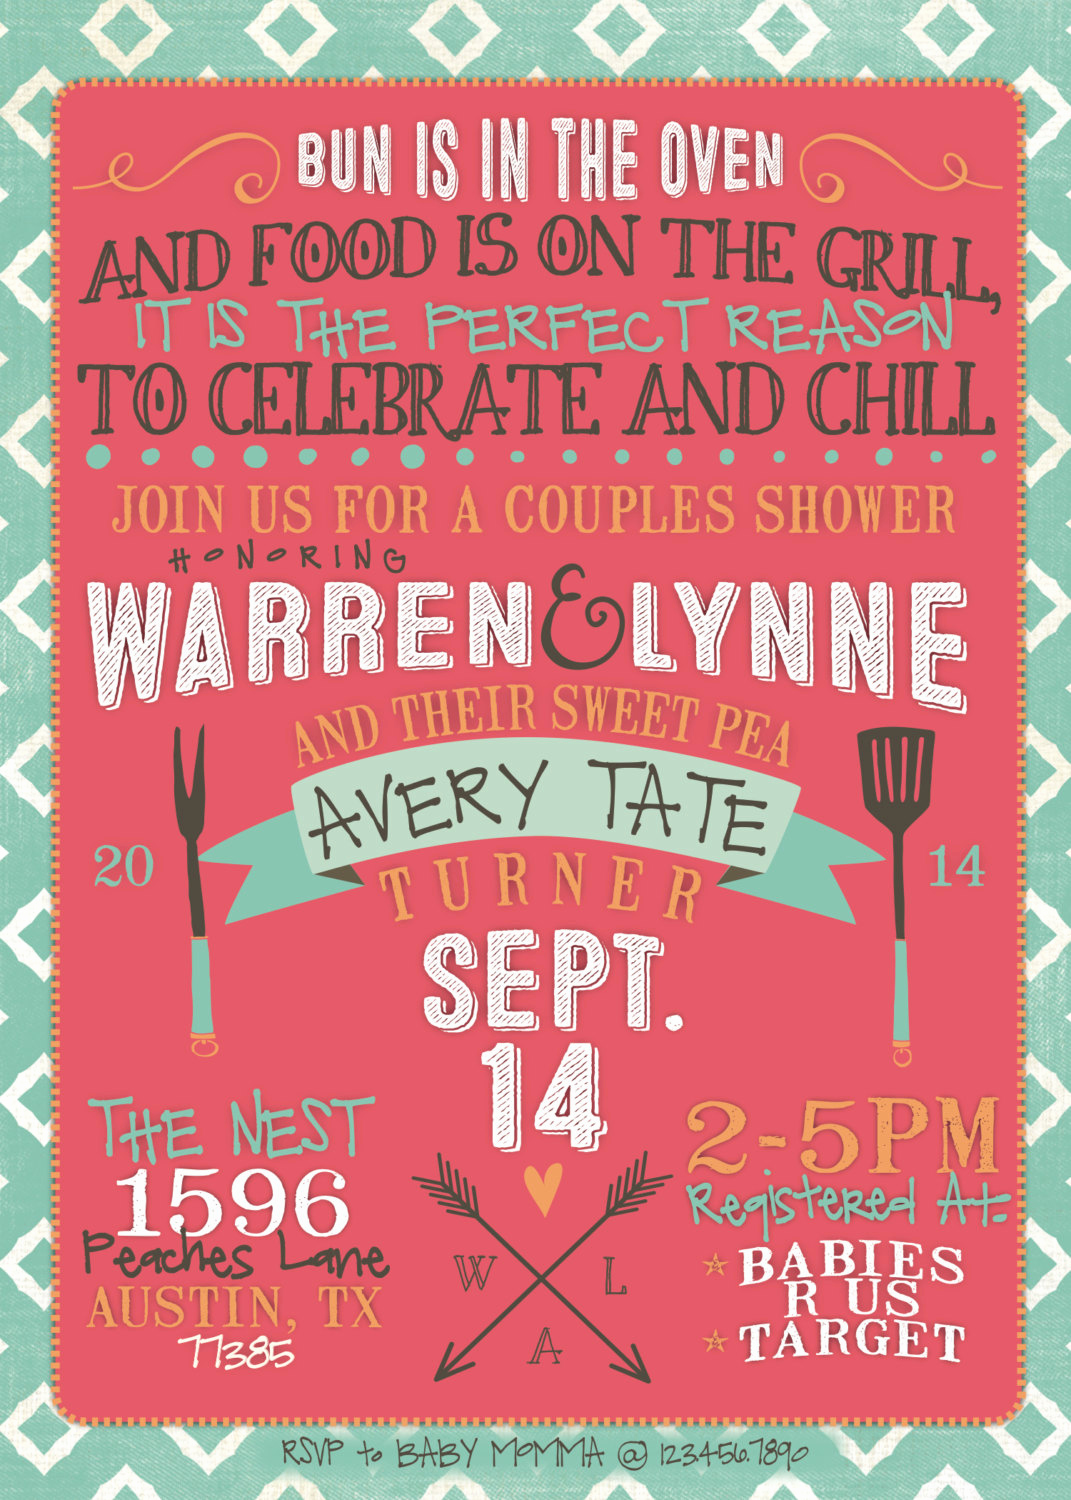 Baby Shower Invitation Example Inspirational Couples Baby Shower Invitation Bbq Modern Girl or Boy